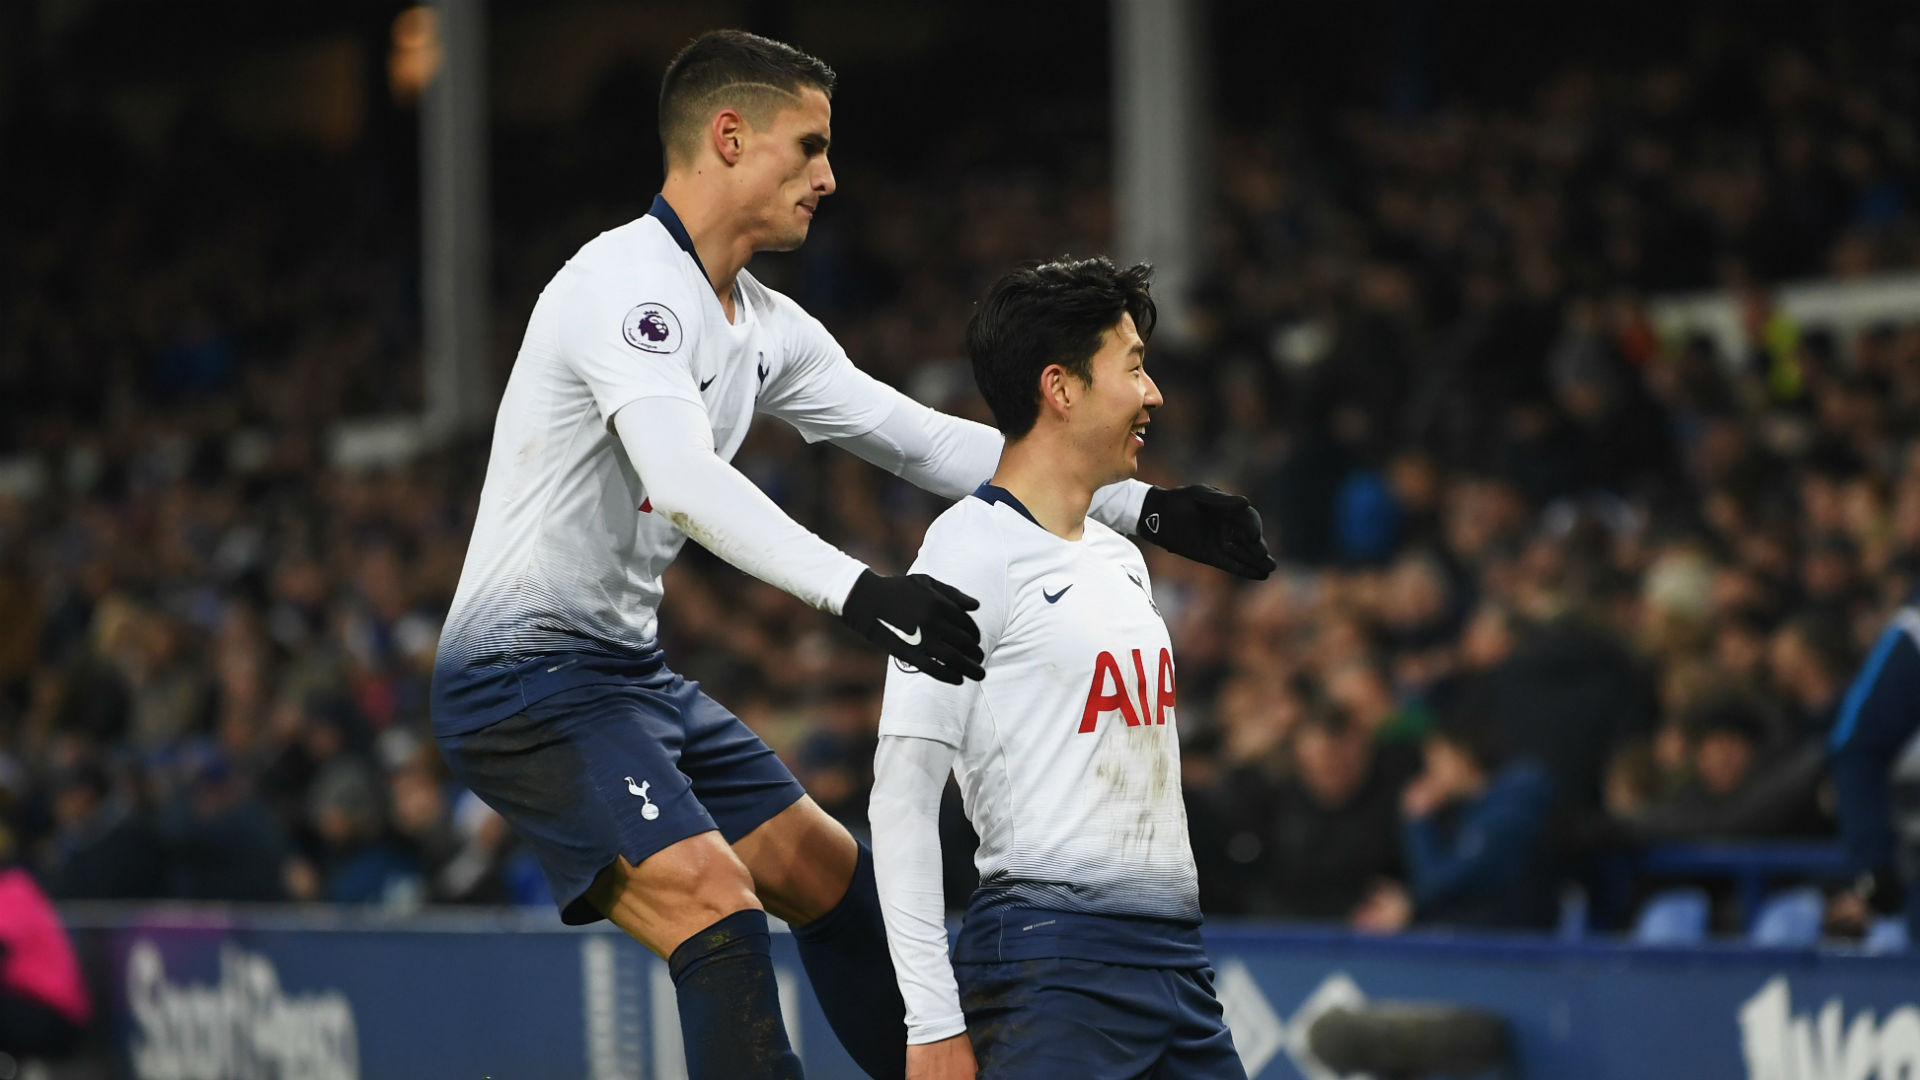 Pochettino rejects Manchester United link to focus on Spurs title challenge